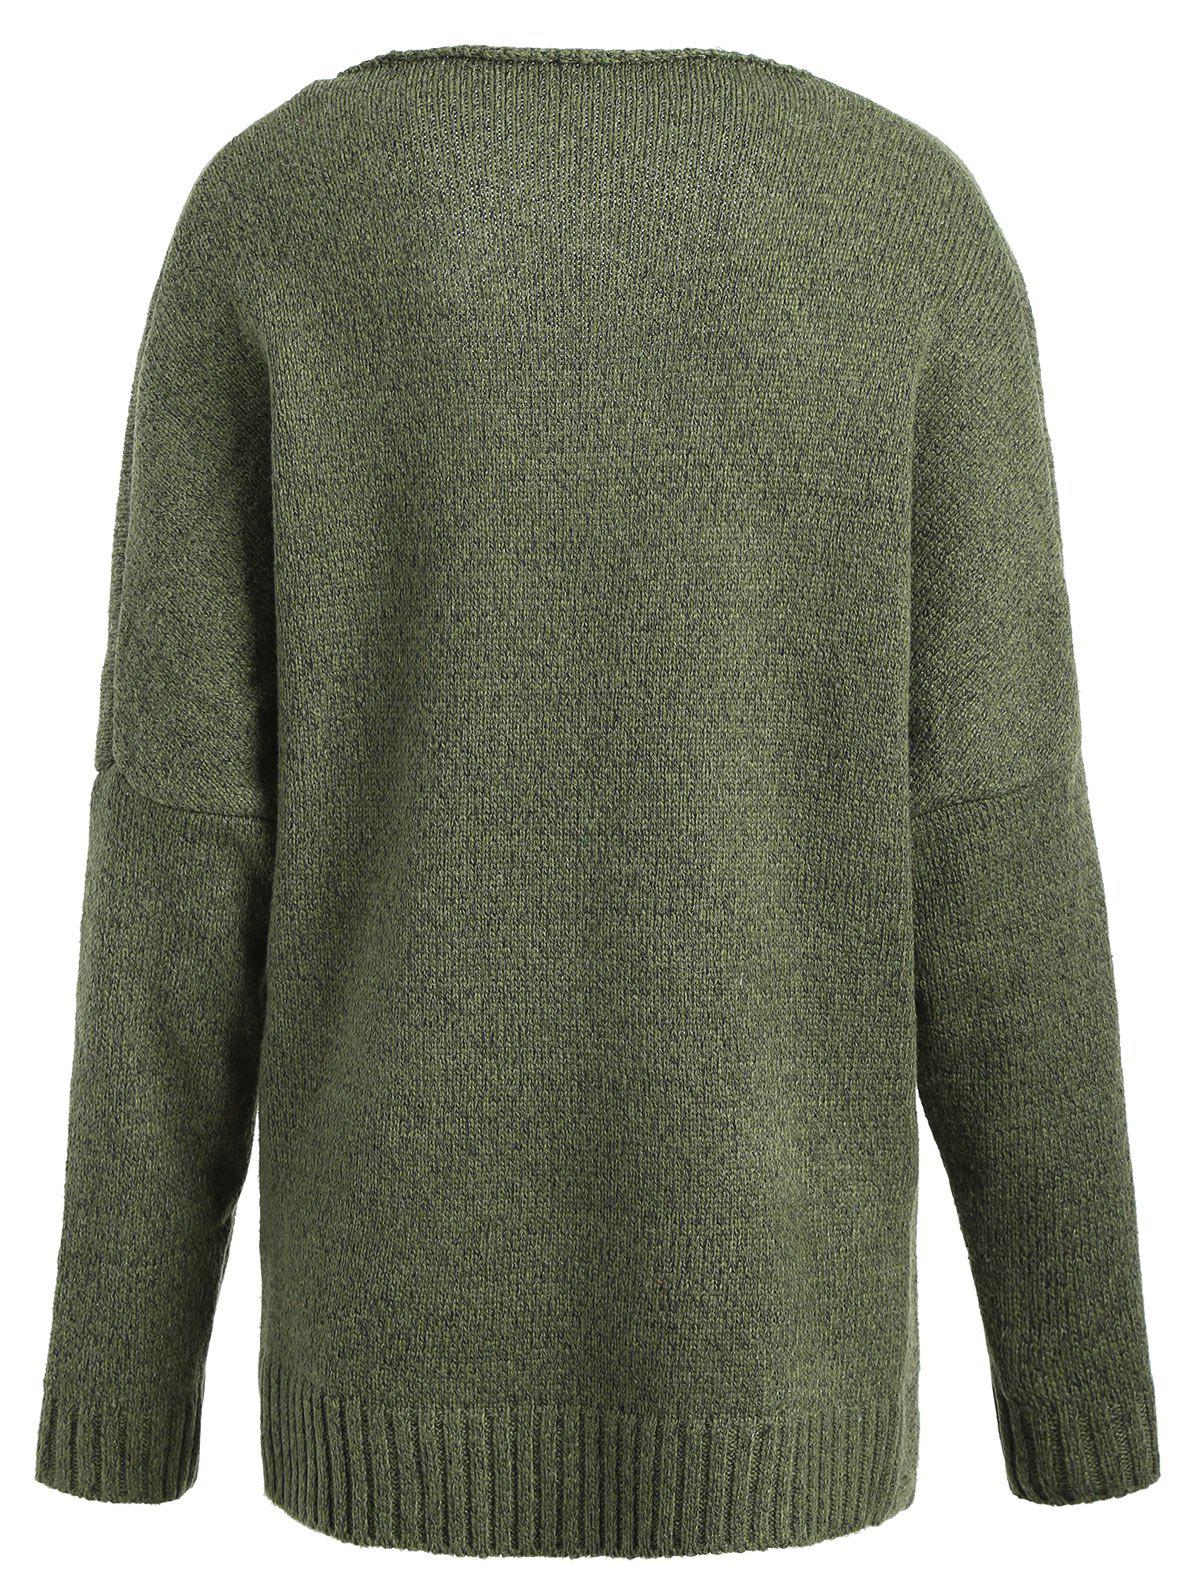 Plus Size Surplice Drop Shoulder Sweater - ARMY GREEN ONE SIZE